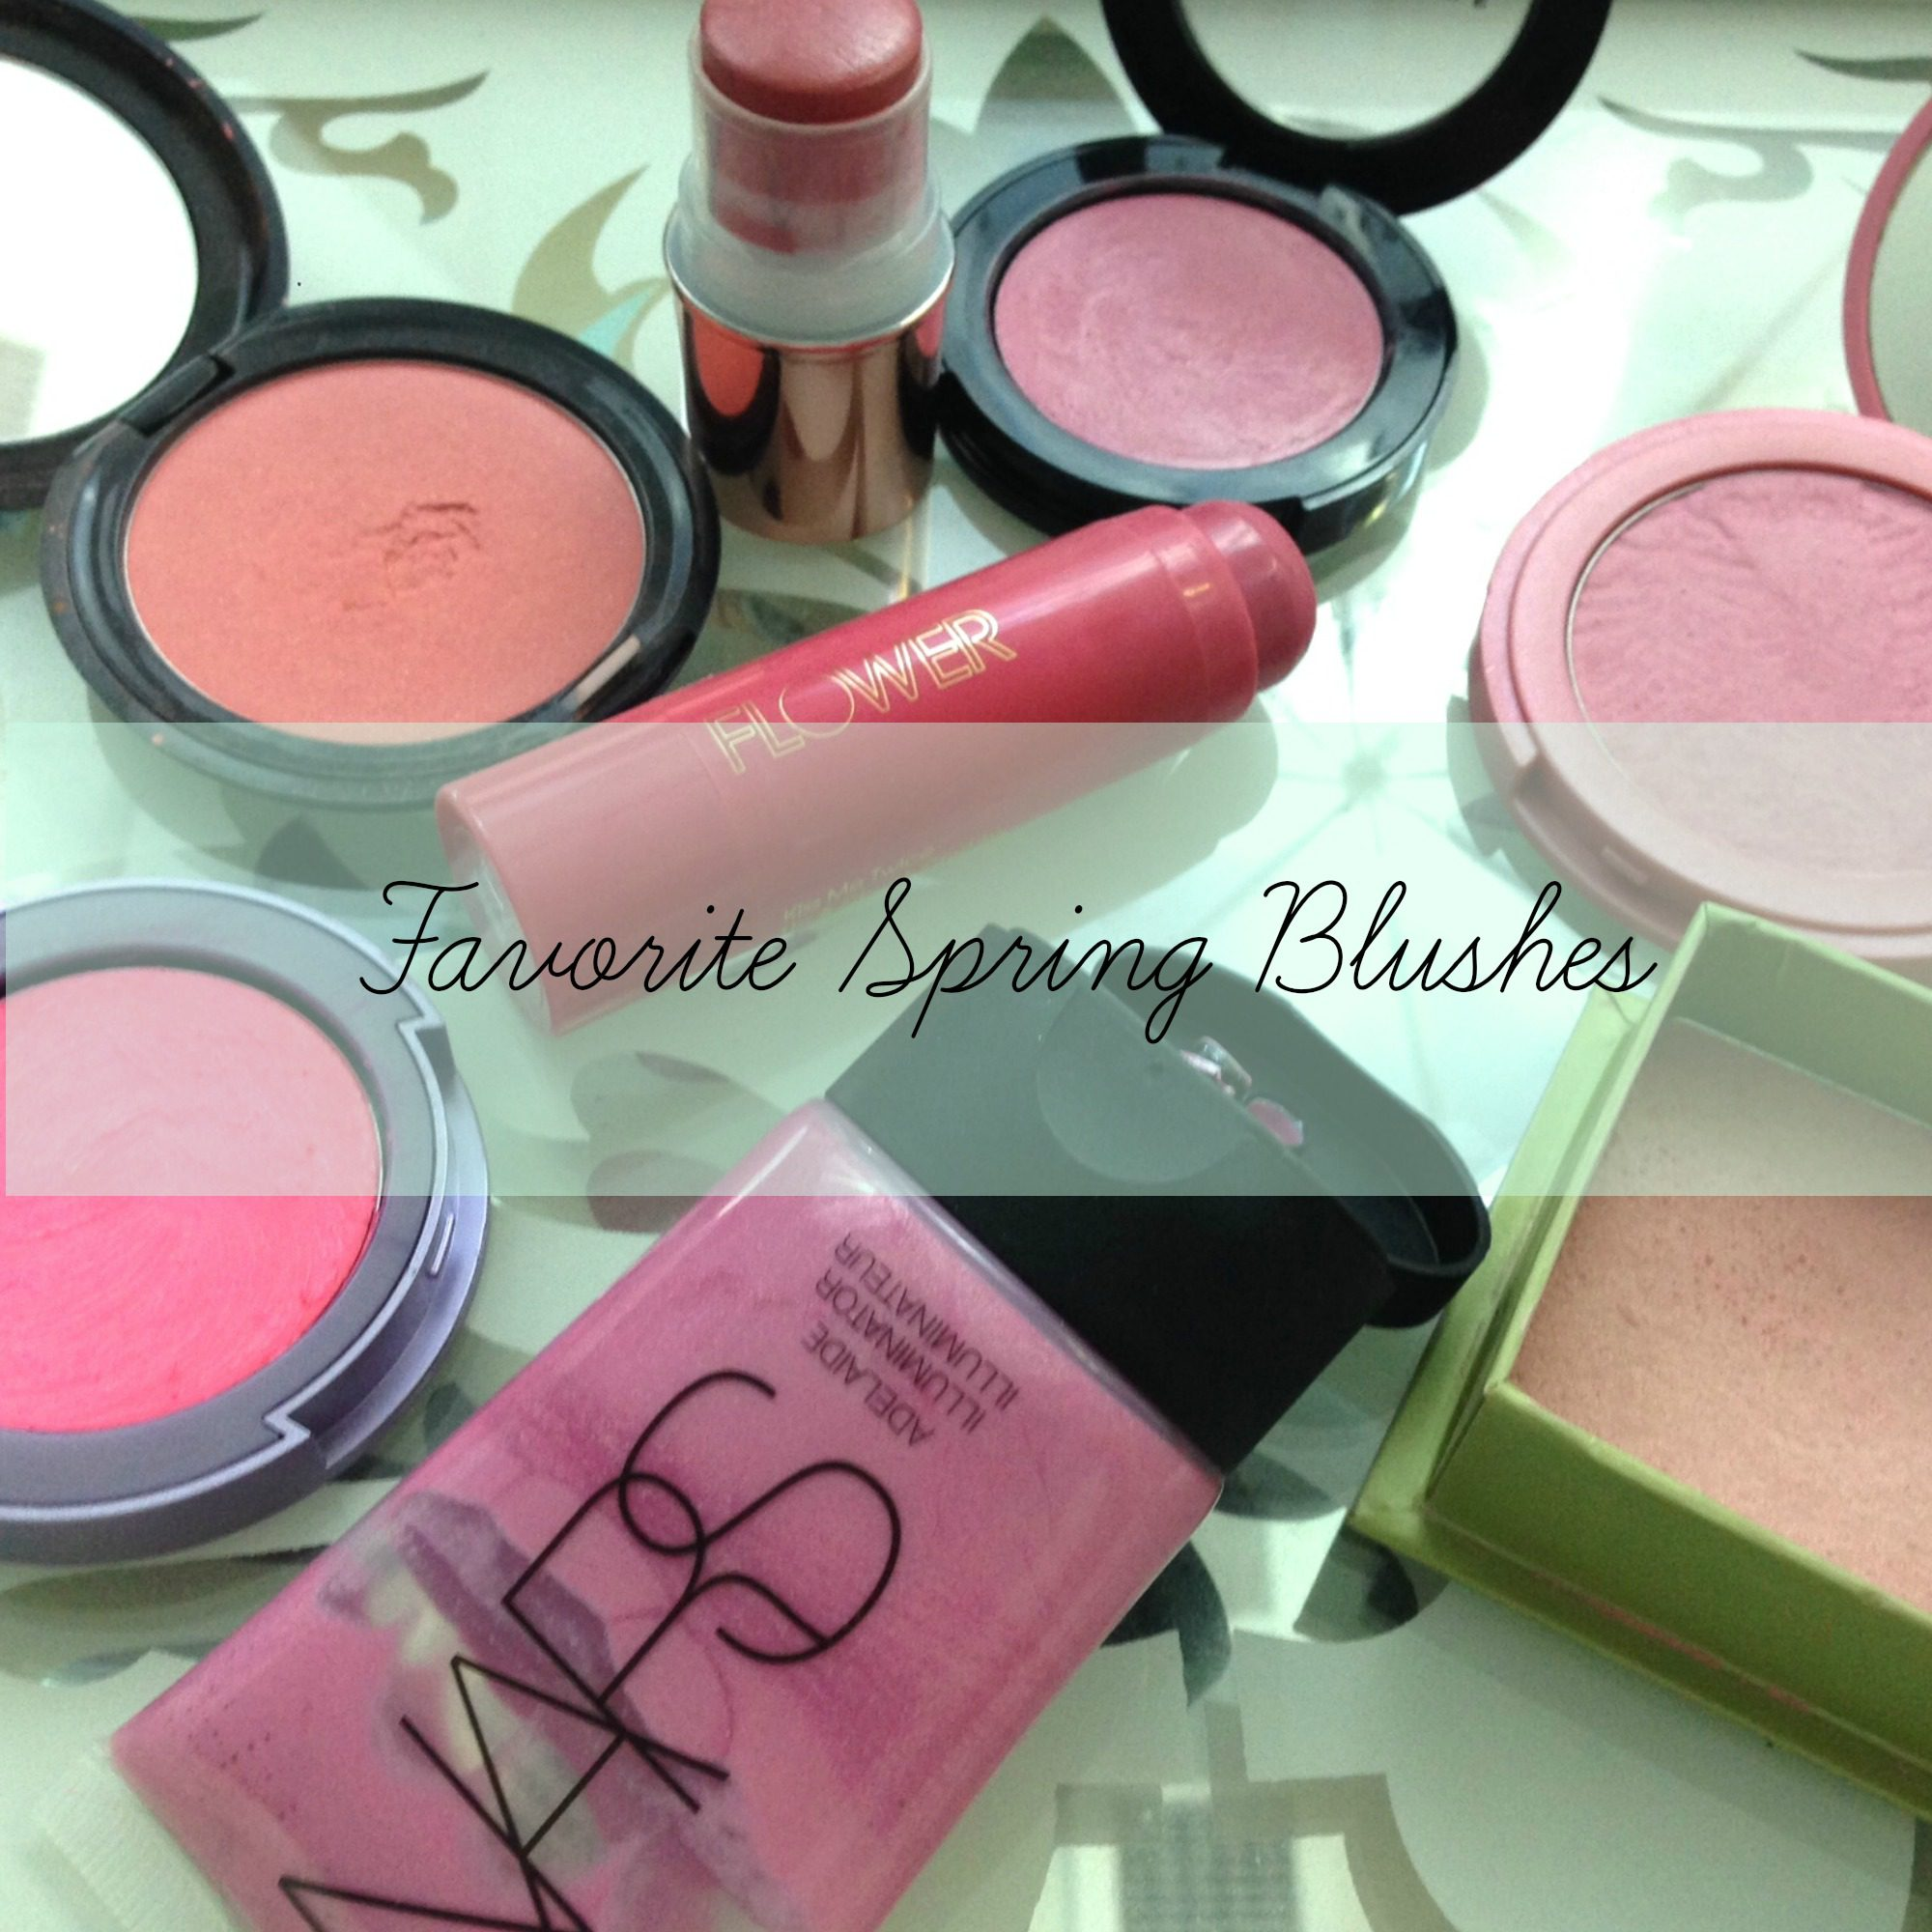 Favorite Spring Blushes